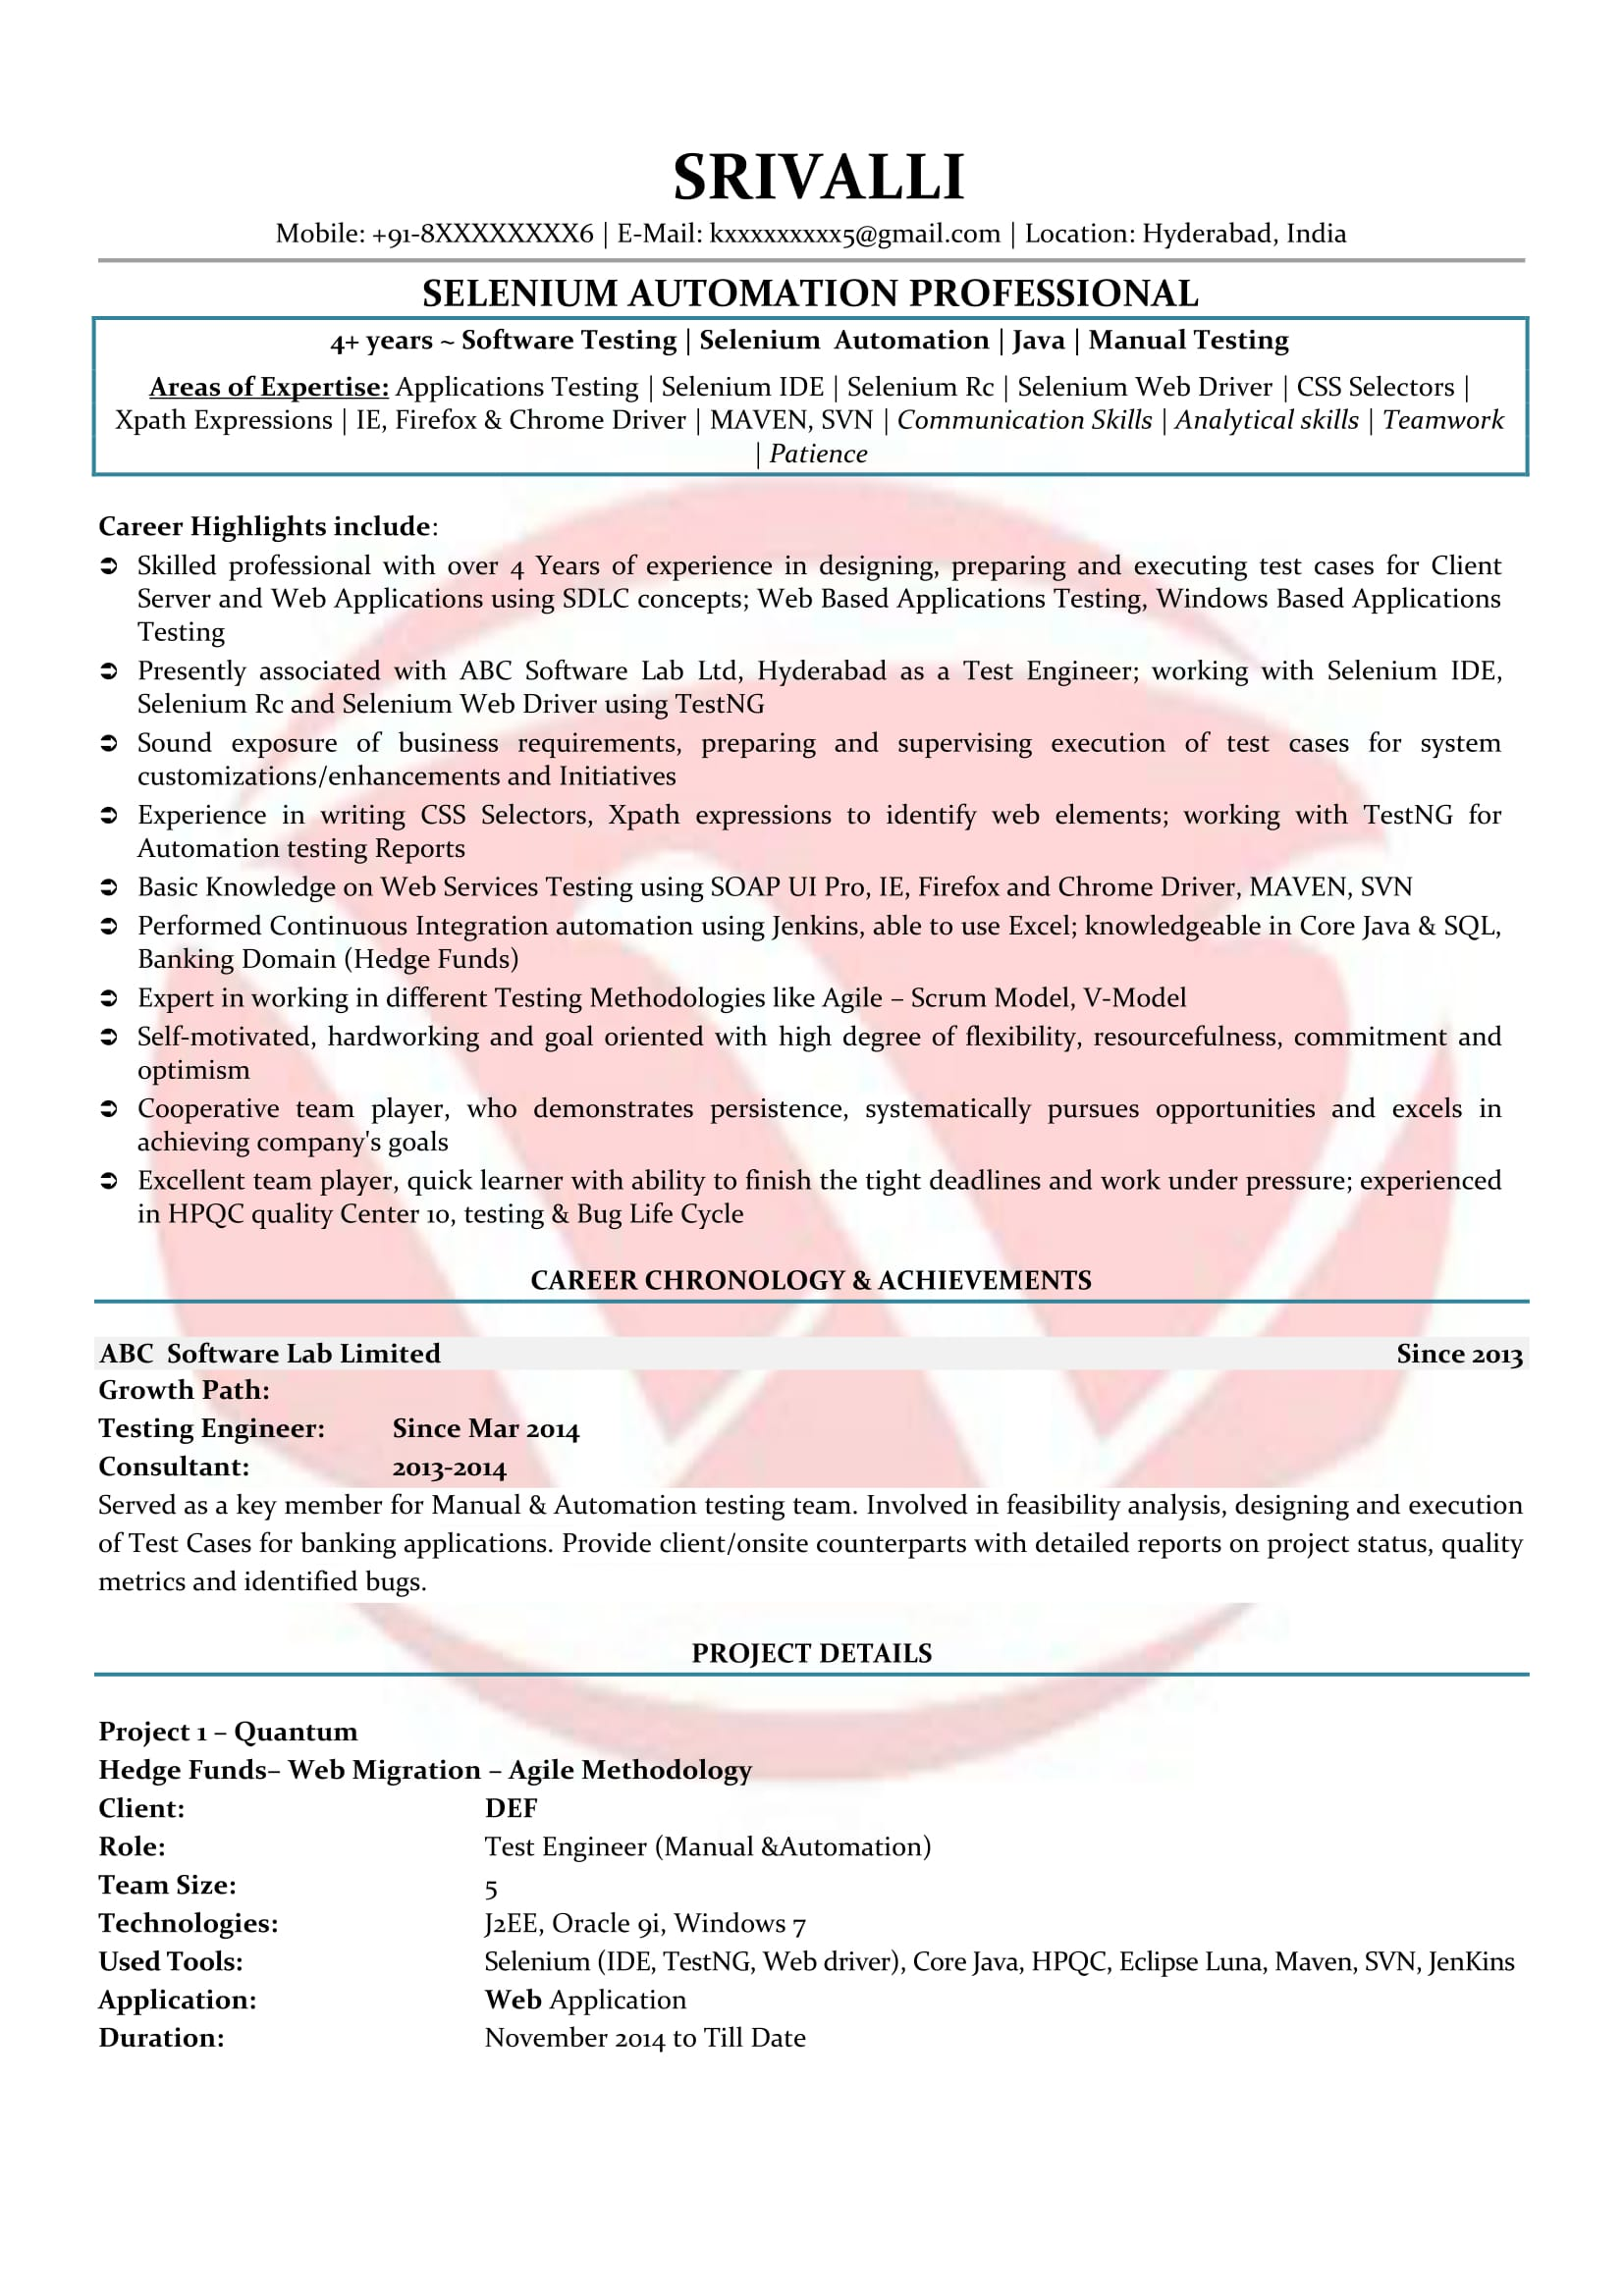 selenium sample resumes resume format templates for year experience teacher objectives Resume Selenium Resume For 1 Year Experience